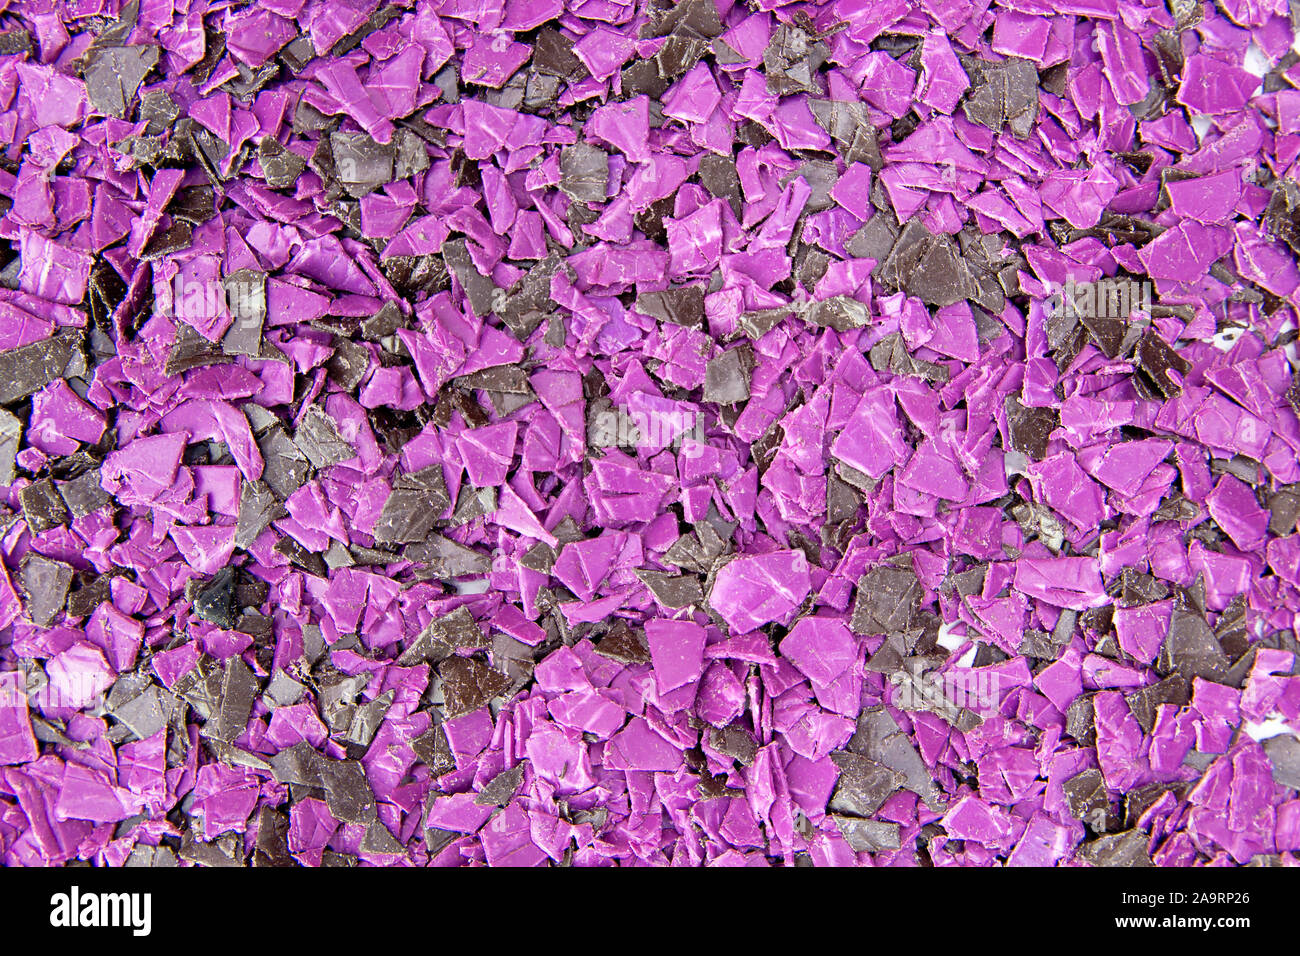 pieces of plastic for recycling. Crushed polyethylene, polypropylene close-up. The view from the top Stock Photo